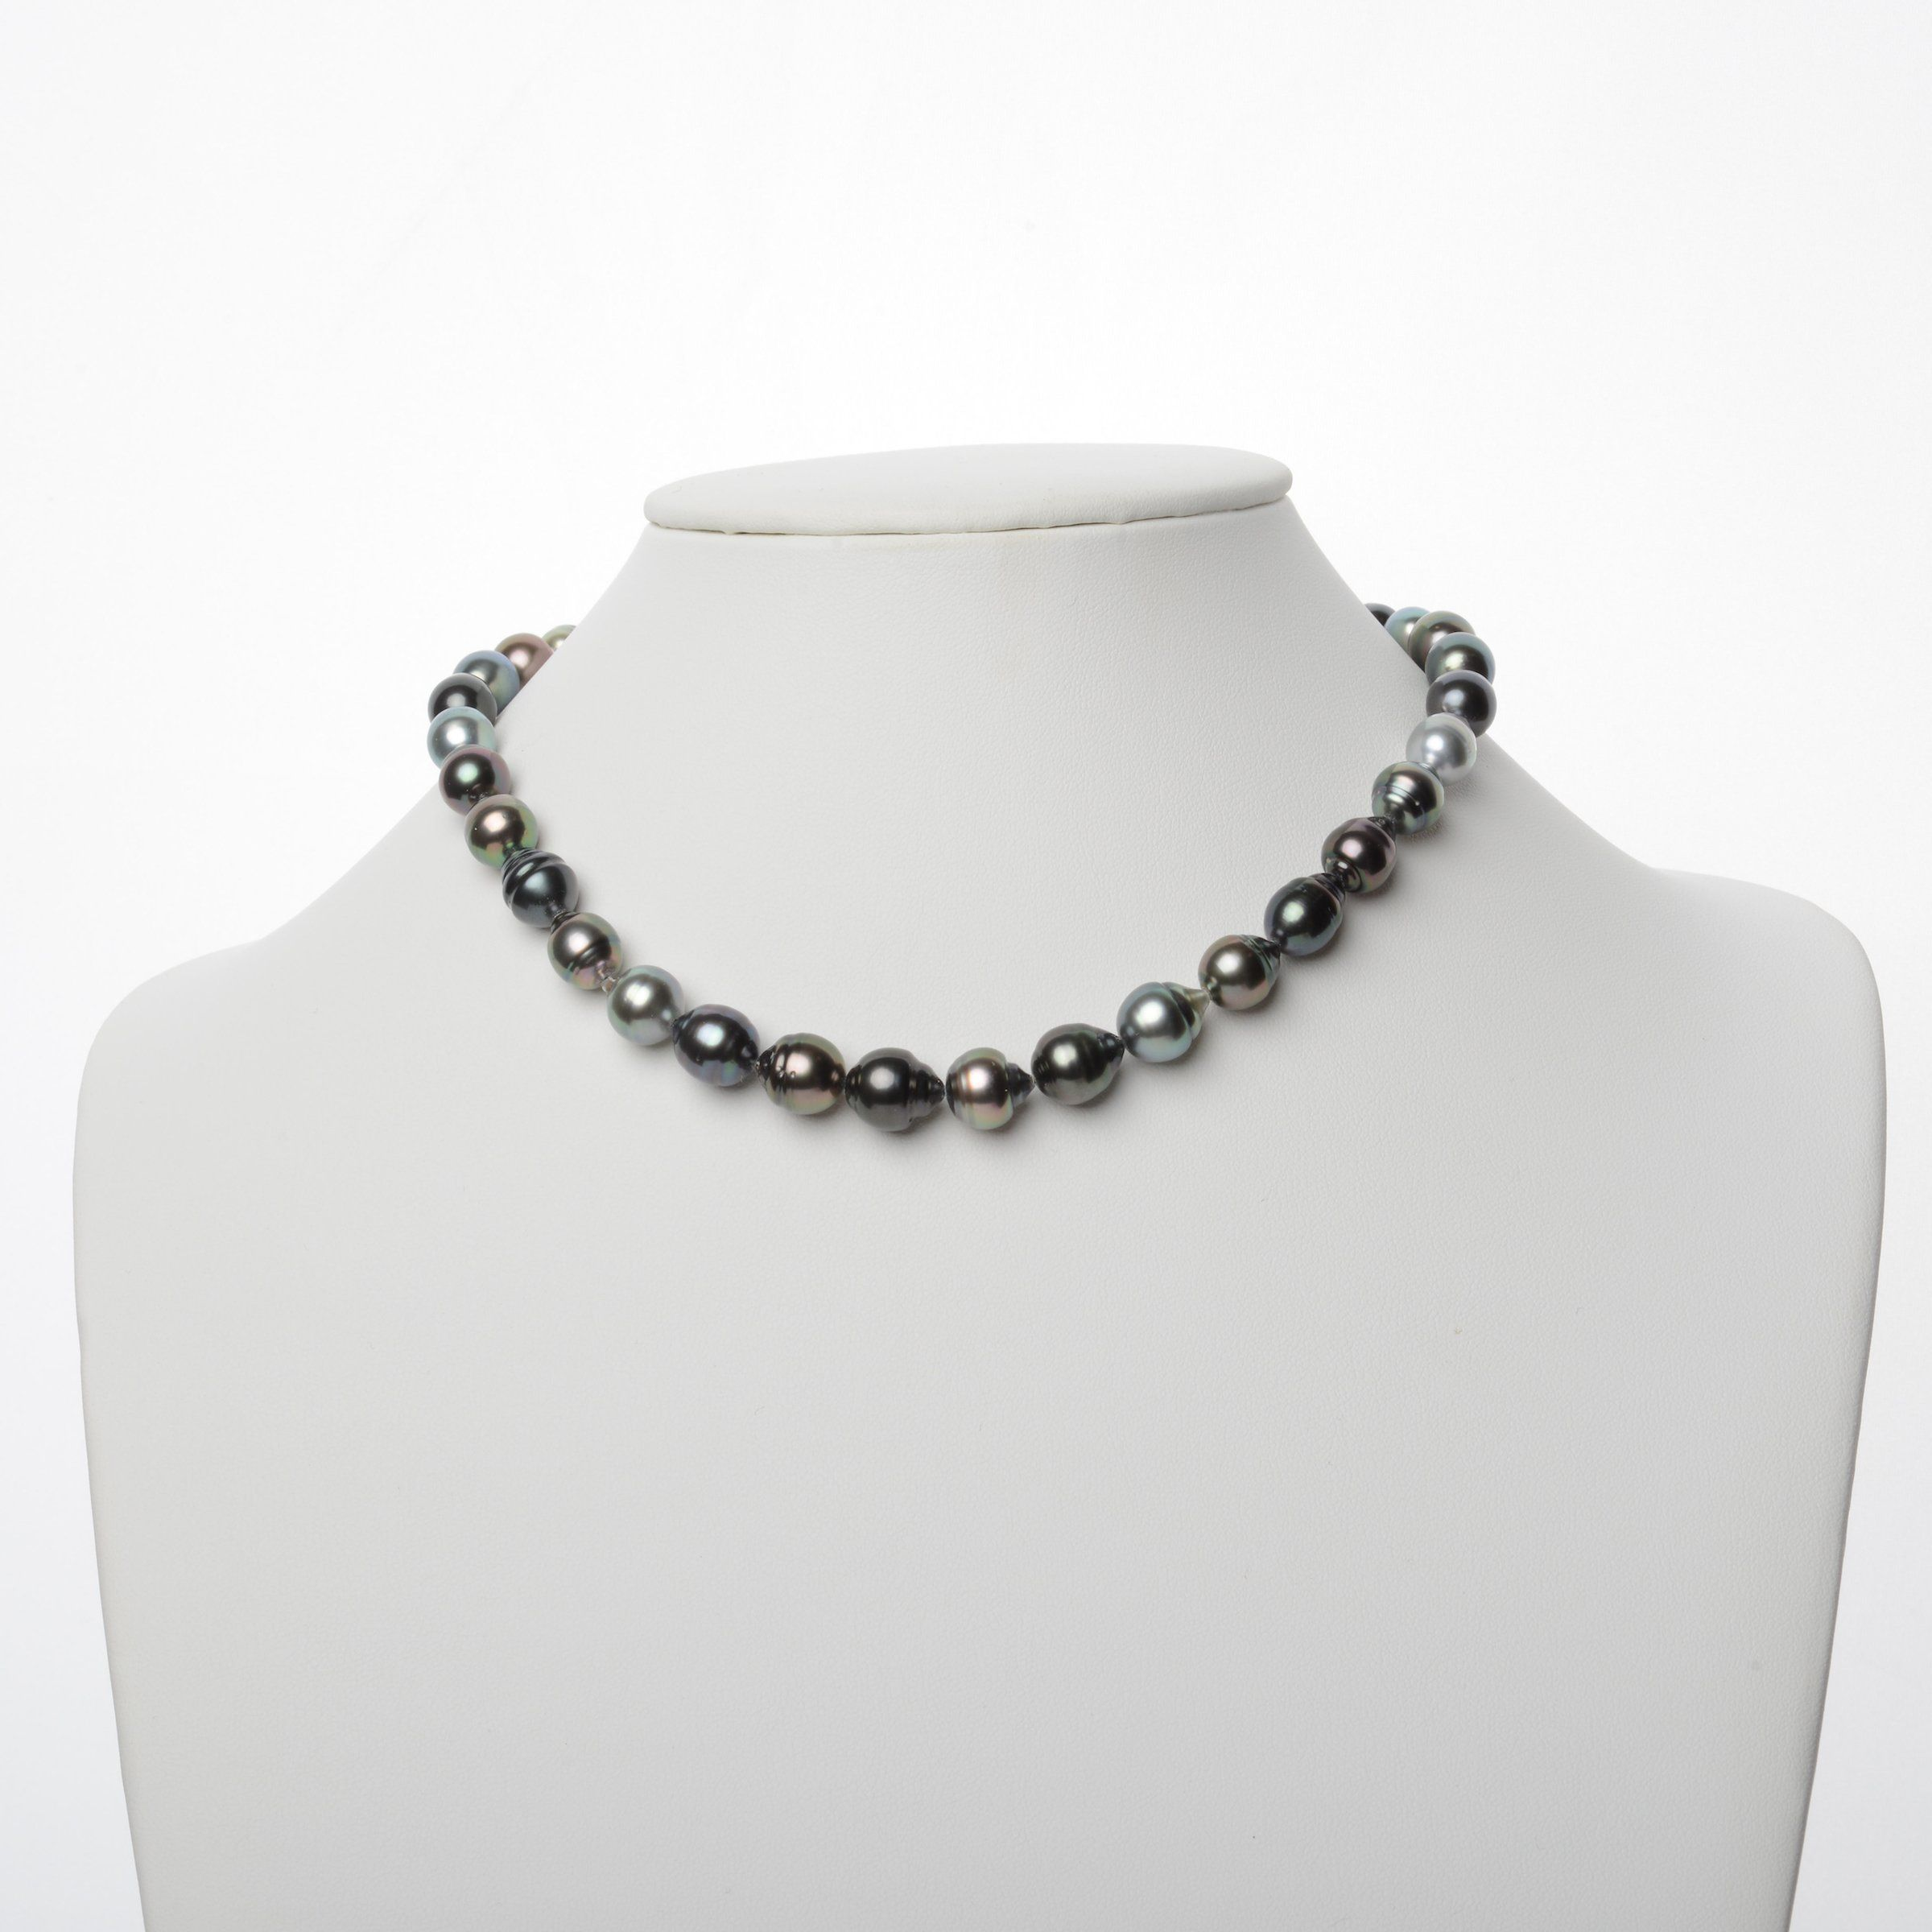 8.6-10.9 mm AAA Tahitian Baroque Pearl Necklace